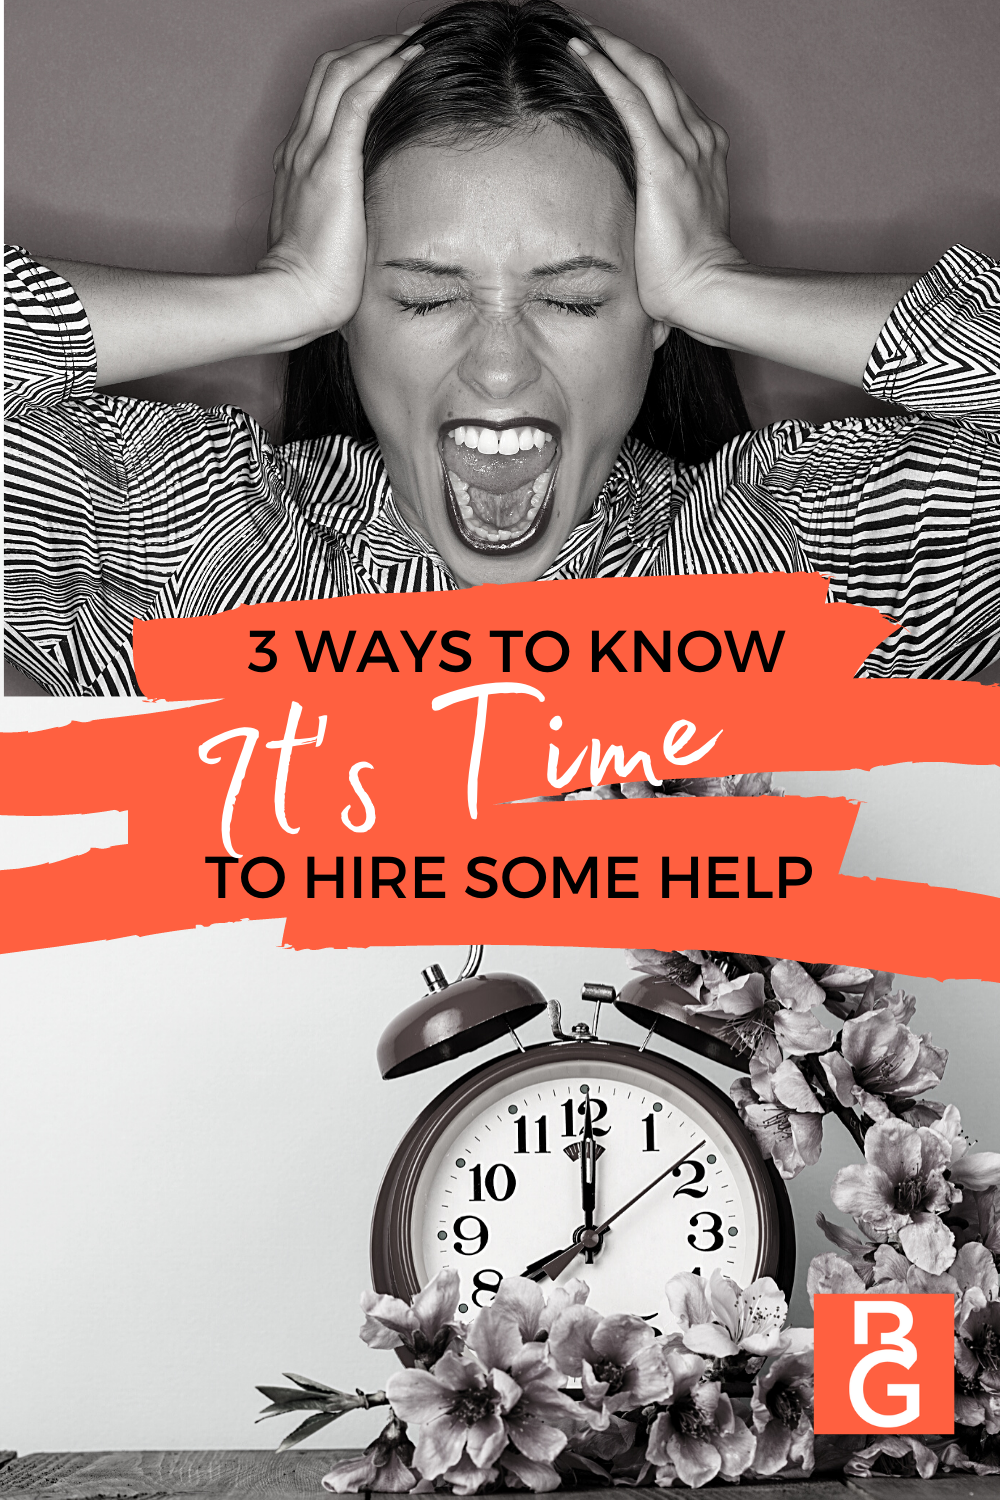 3 Ways to Know its Time to Hire Some Help